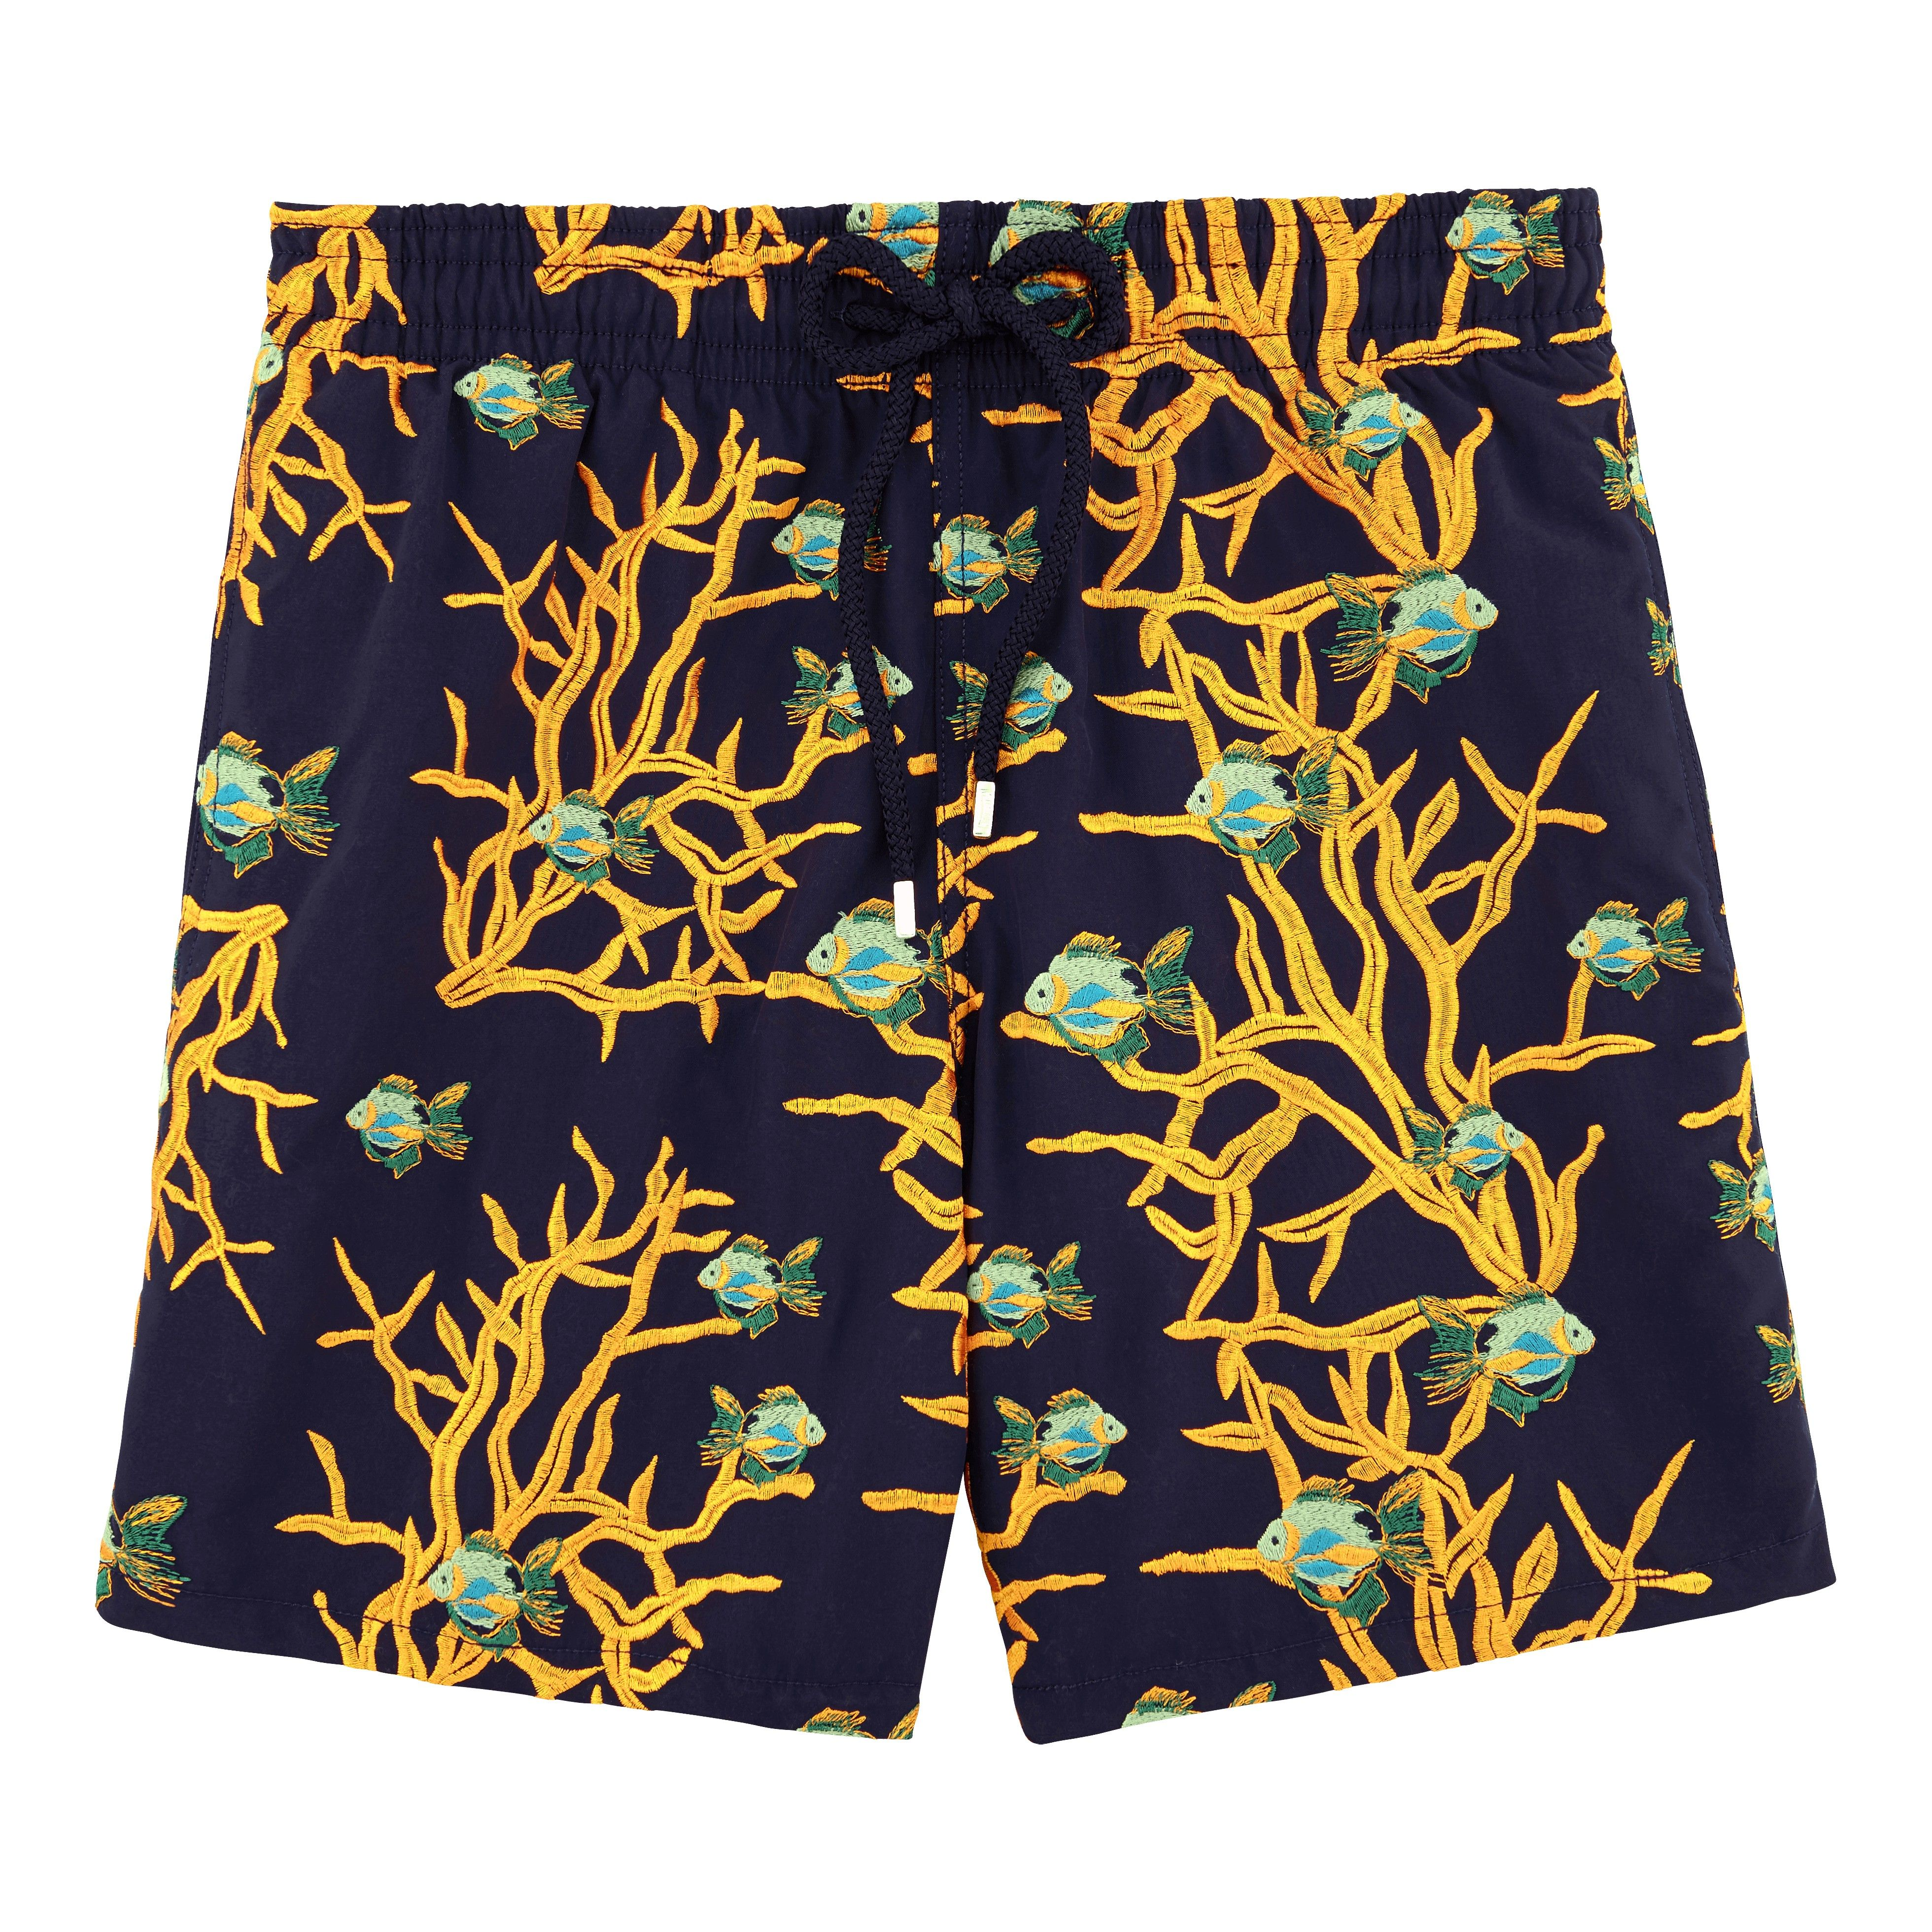 b0caff2a8f VILEBREQUIN All Over Coral And Fish Embroidery Swimwear, mistral - NAVY.  #vilebrequin #cloth #